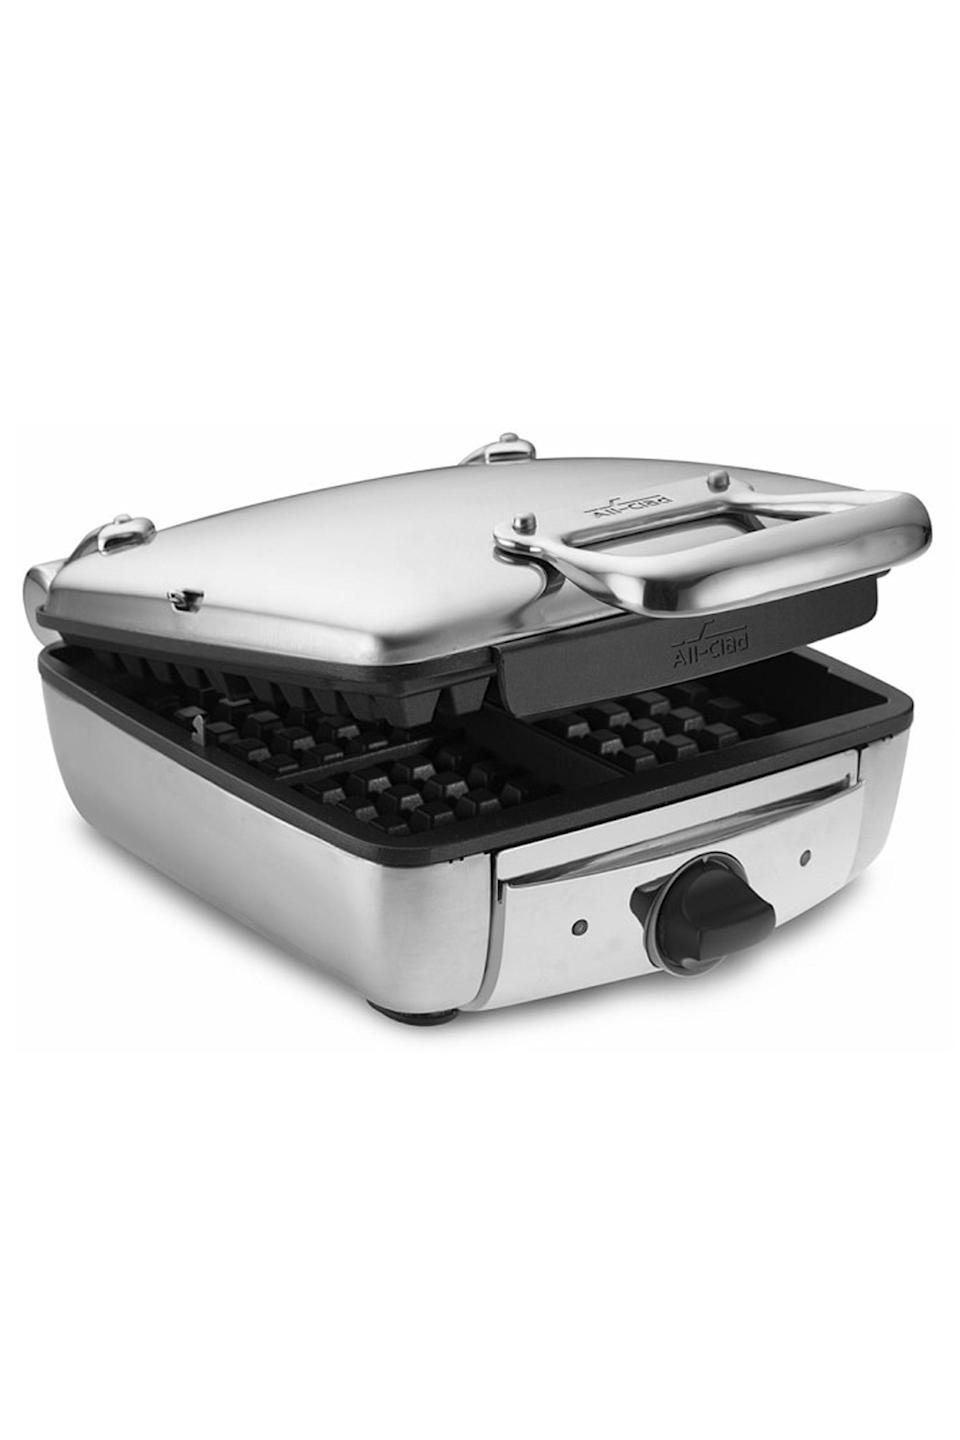 """<p><strong>All-Clad</strong></p><p>Williams-Sonoma</p><p><strong>$179.95</strong></p><p><a href=""""https://go.redirectingat.com?id=74968X1596630&url=https%3A%2F%2Fwww.williams-sonoma.com%2Fproducts%2Fall-clad-electric-belgian-waffle-maker&sref=https%3A%2F%2Fwww.cosmopolitan.com%2Flifestyle%2Fg34965234%2Fbest-waffle-makers%2F"""" rel=""""nofollow noopener"""" target=""""_blank"""" data-ylk=""""slk:shop now"""" class=""""link rapid-noclick-resp"""">shop now </a></p><p>Crispy on the outside, yet tender on the inside—this is how the perfect waffle should be, and you'll definitely get that with this maker. Plus, if you're messy with the batter, this has a moat to catch it all (bless up).</p>"""